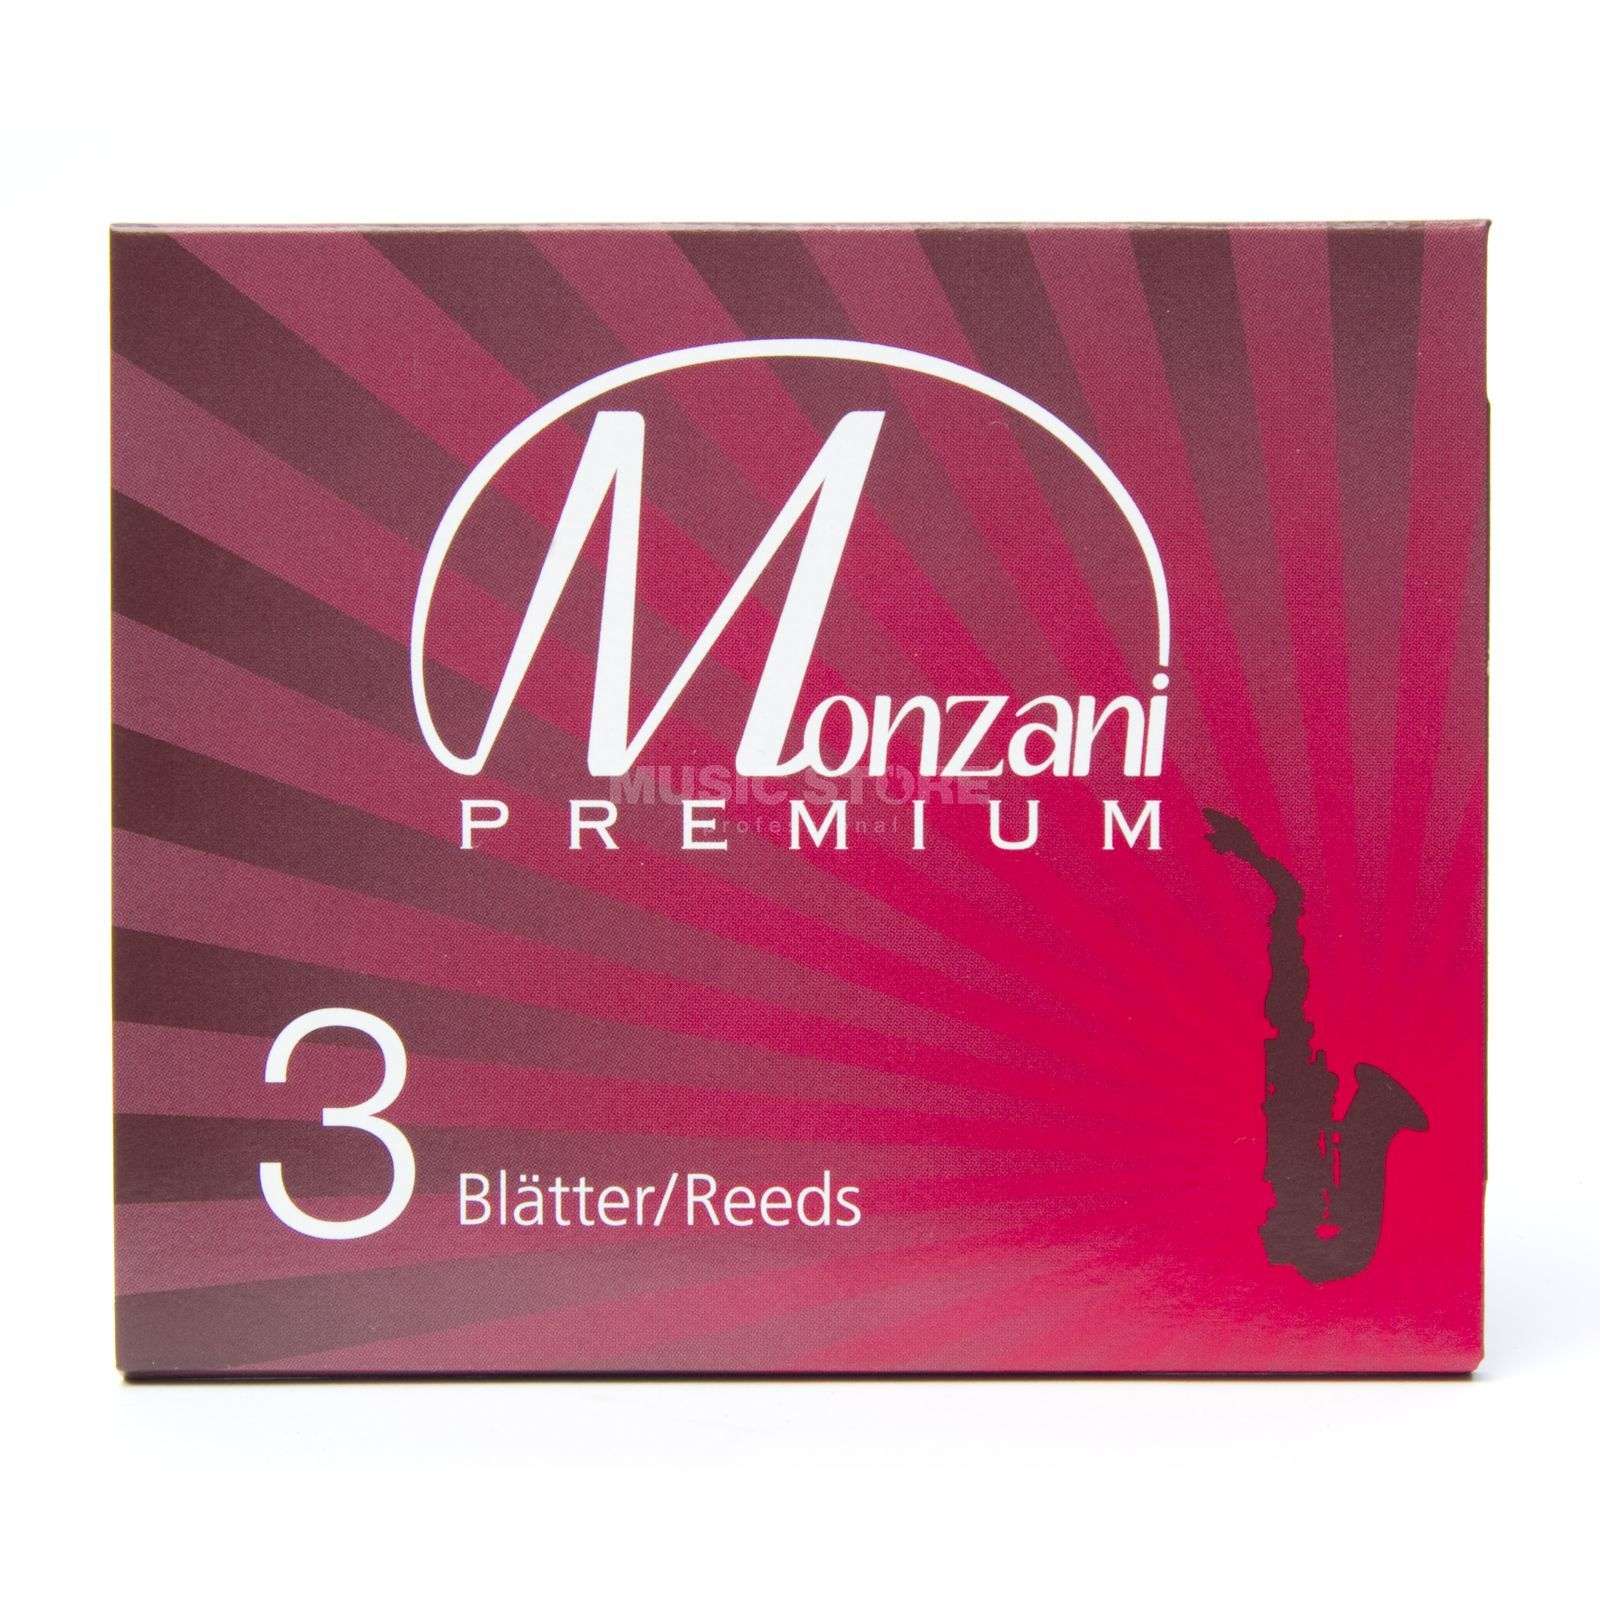 Monzani Premium B Clarinet DEU 2.5 Box of 3 Product Image